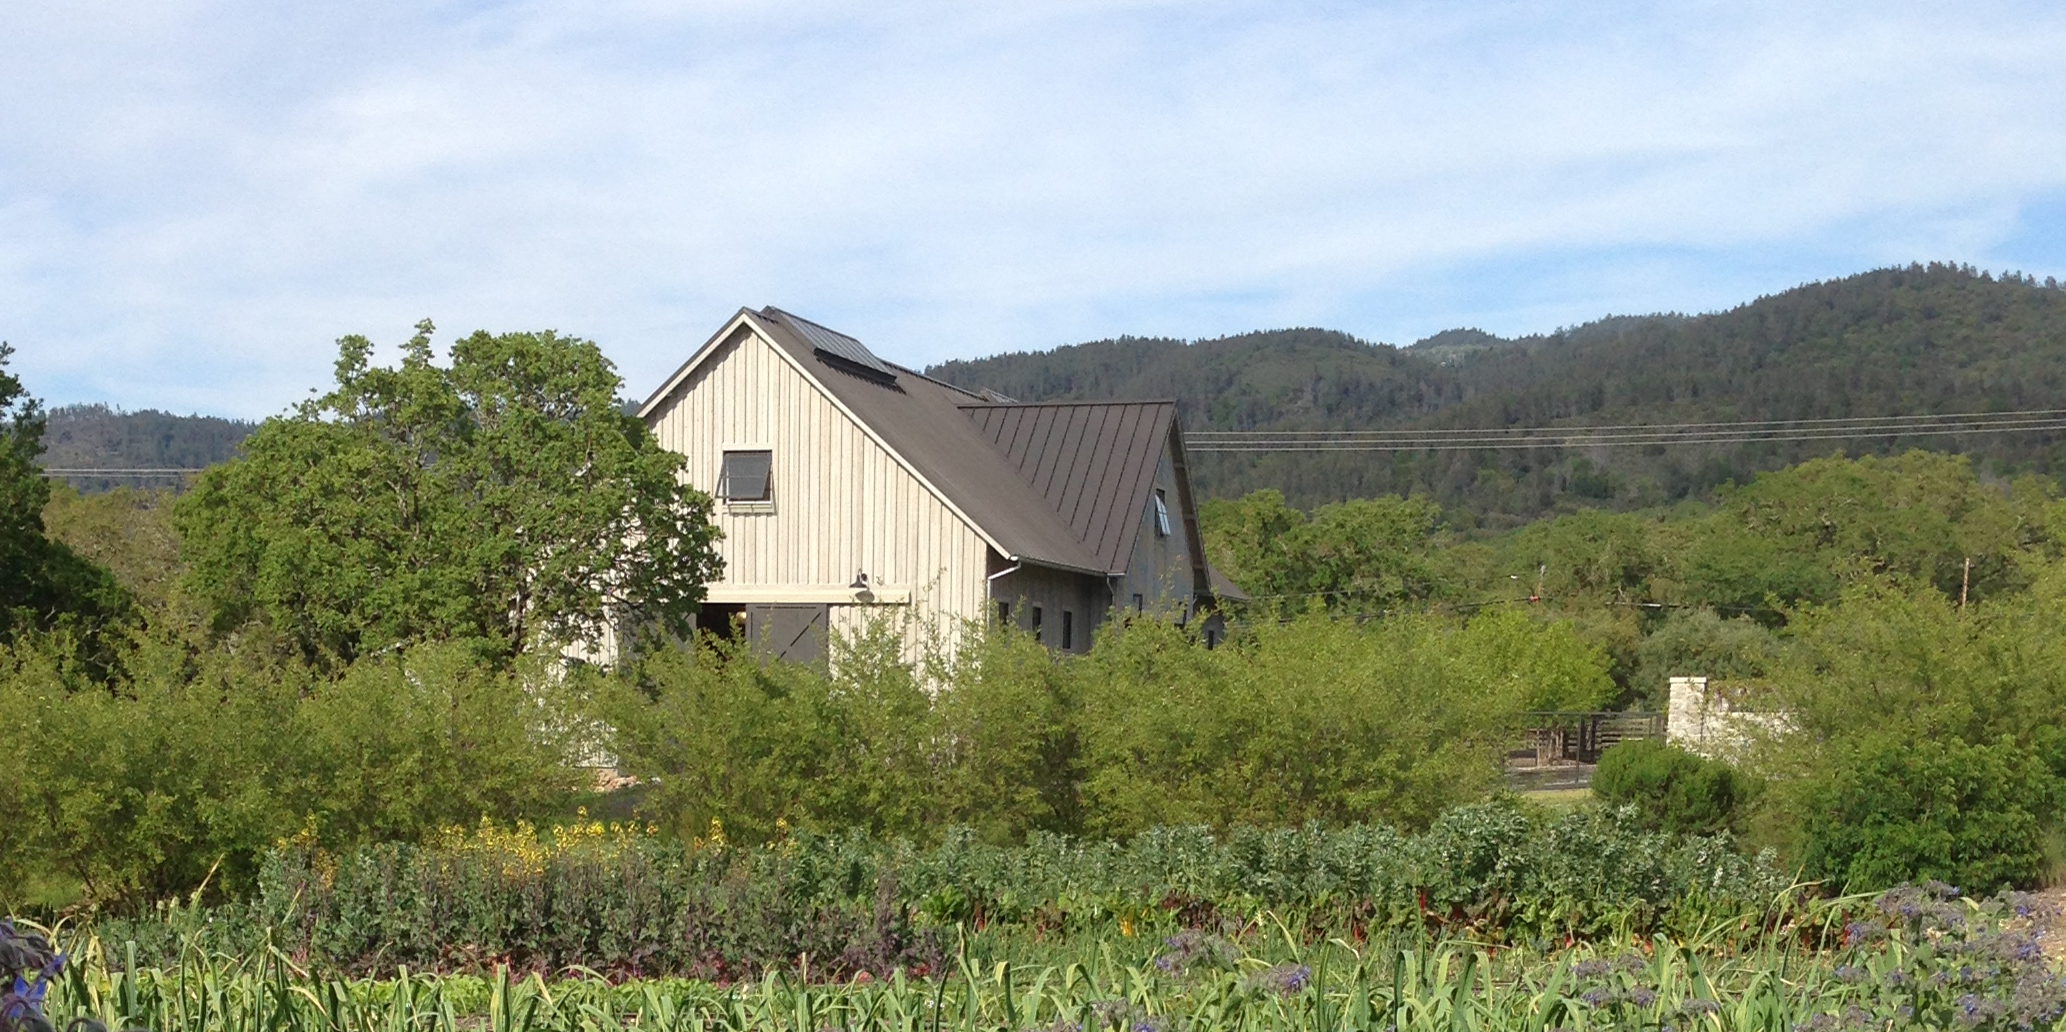 The Barn at Flatbed Farm, 13450 Sonoma Hwy (Hwy 12), in Glen Ellen, CA